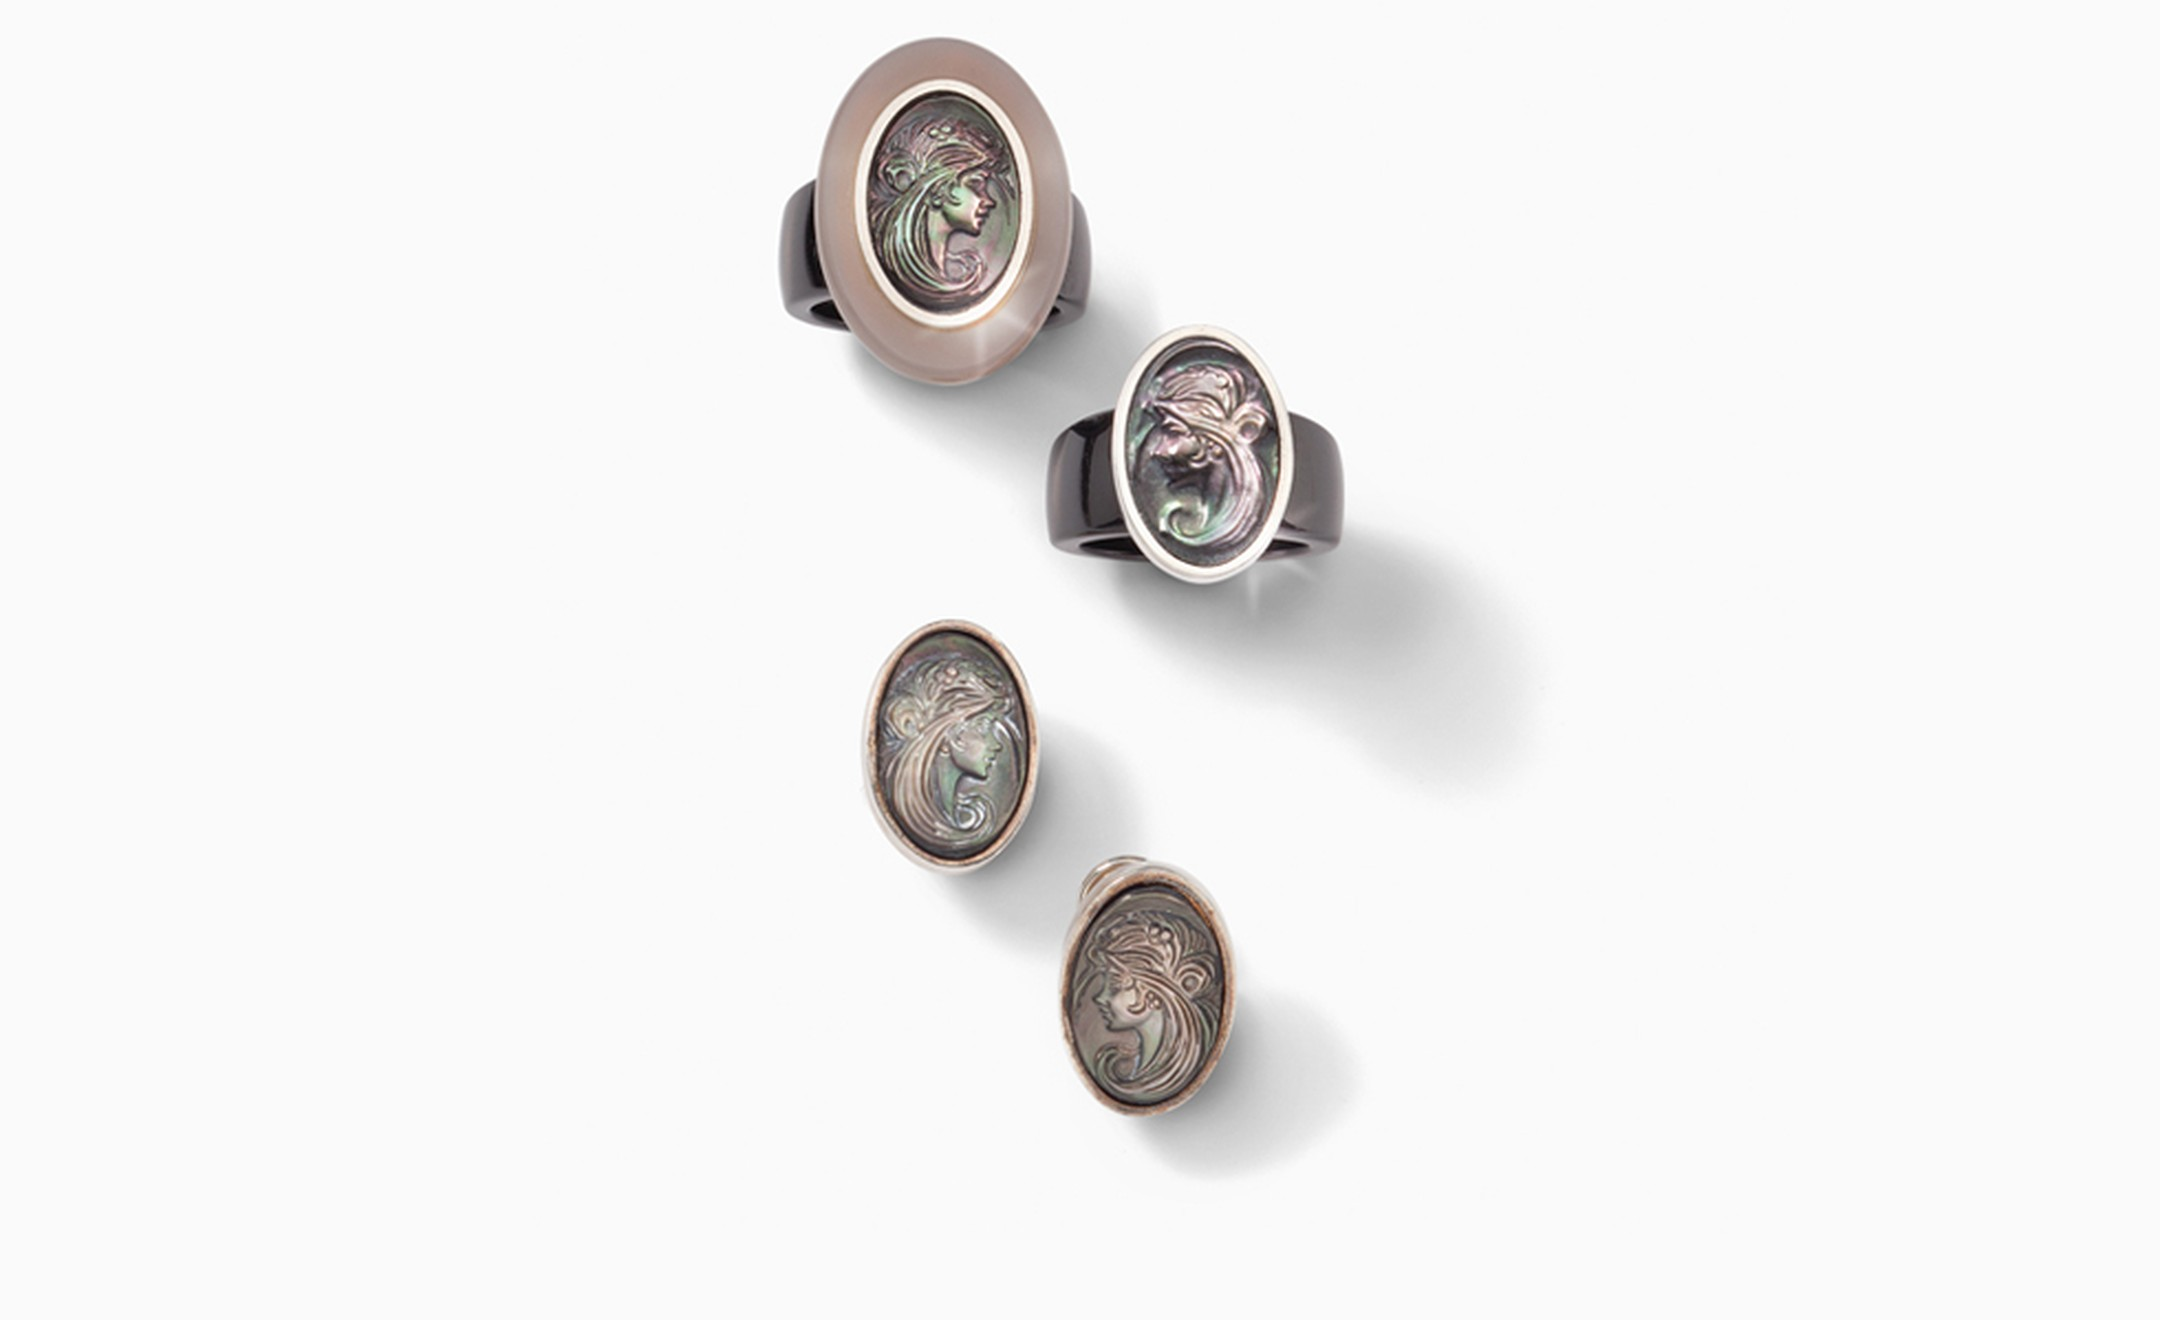 Charlotte Ehinger-Schwarz 1876. Black ceramic ring with agate over mother of pearl and Tahitian mother of pearl cameo. Pair of cameo earrings made out of Tahitian mother of pearl. All pieces sold separatley. Prices start from £230.